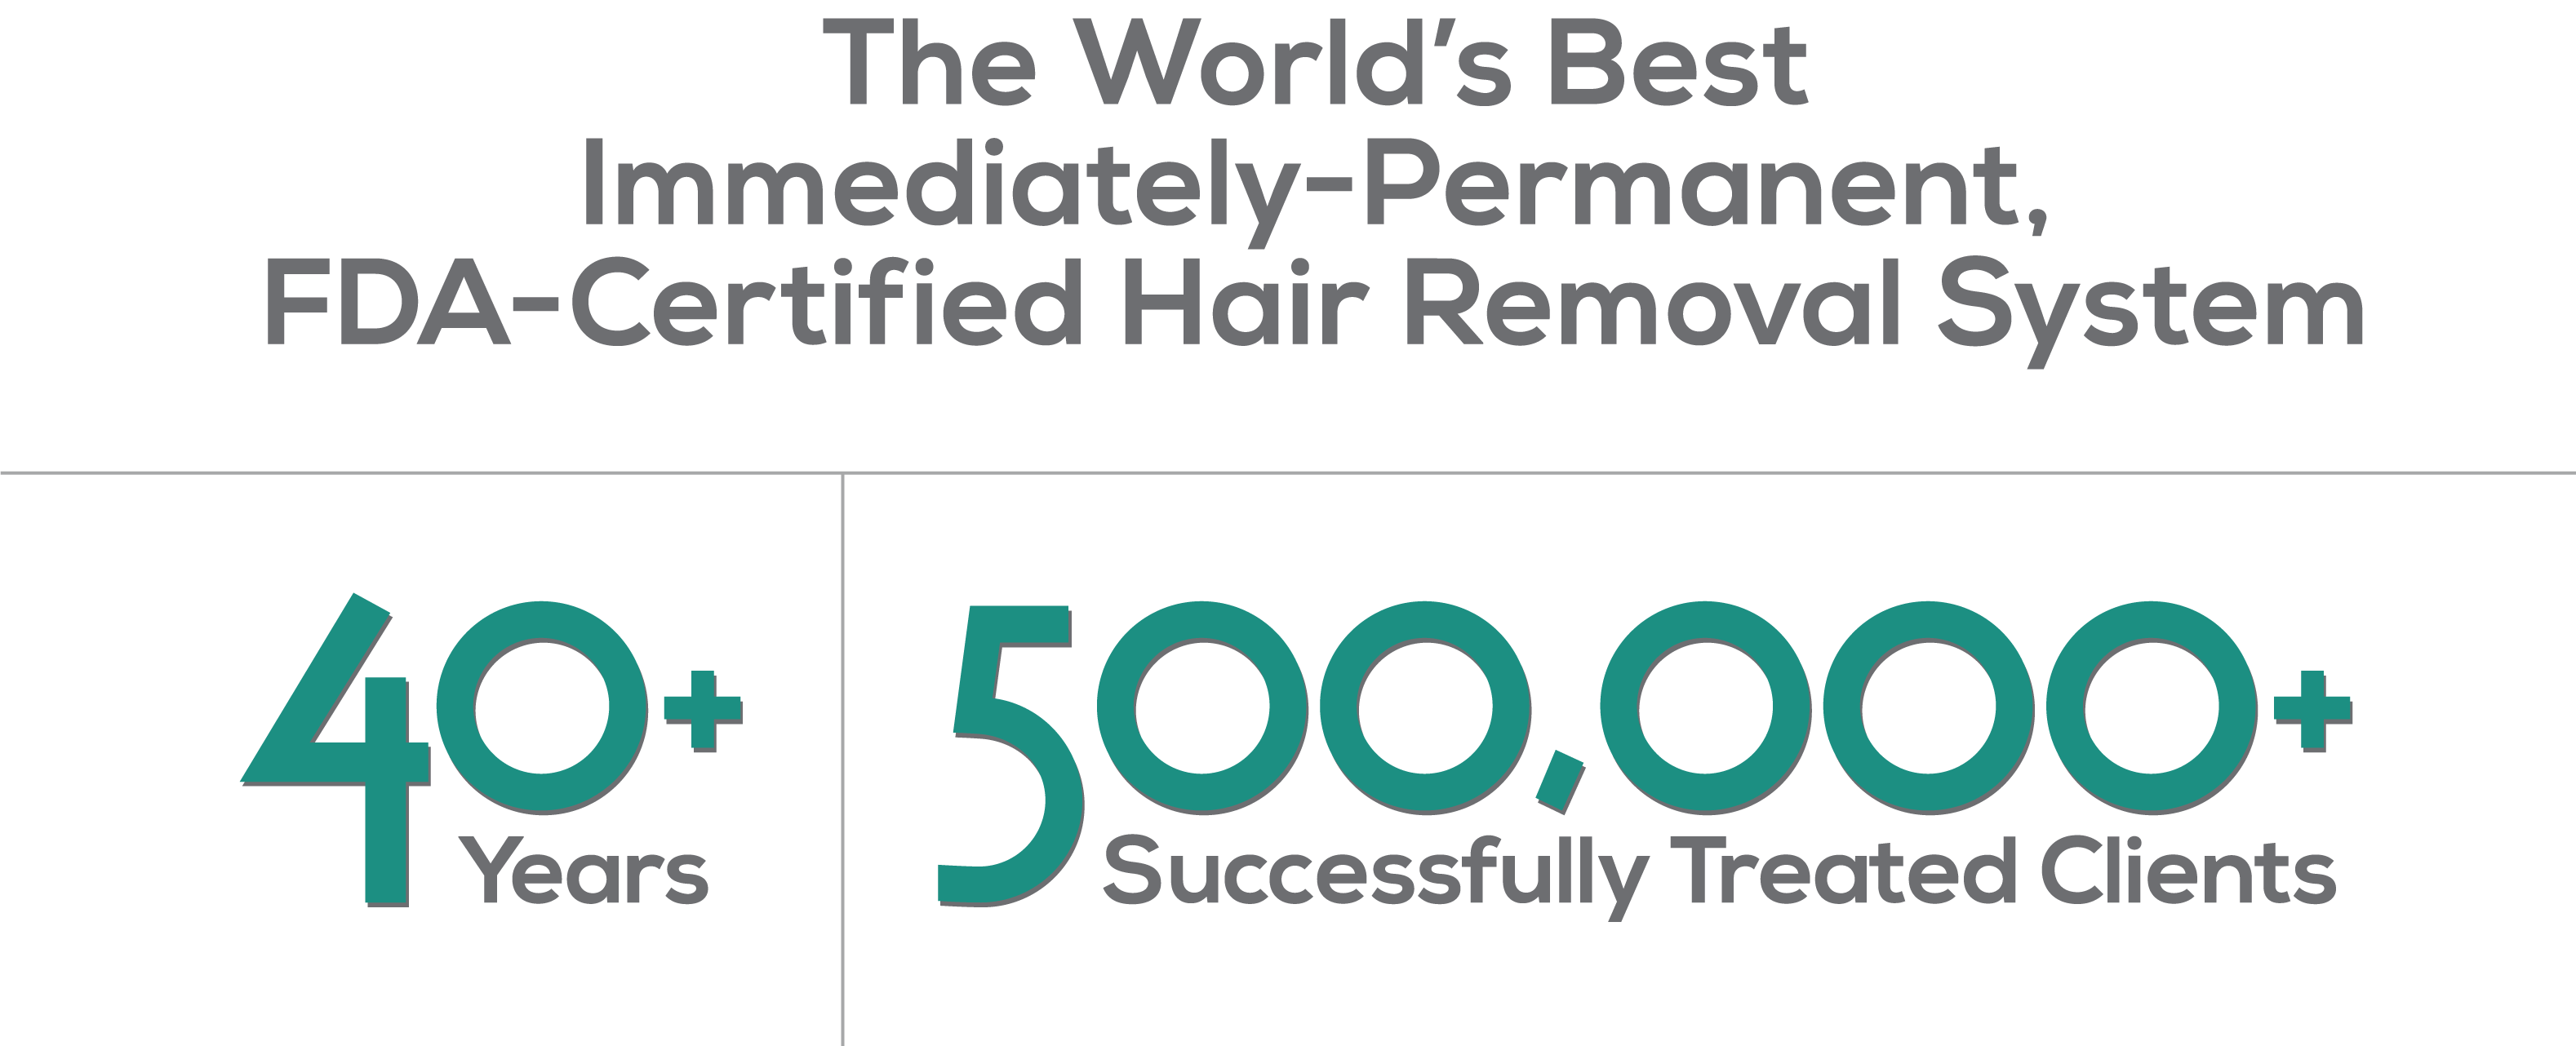 World's Best Immediately-Permanent, FDA-Certified Hair Removal System